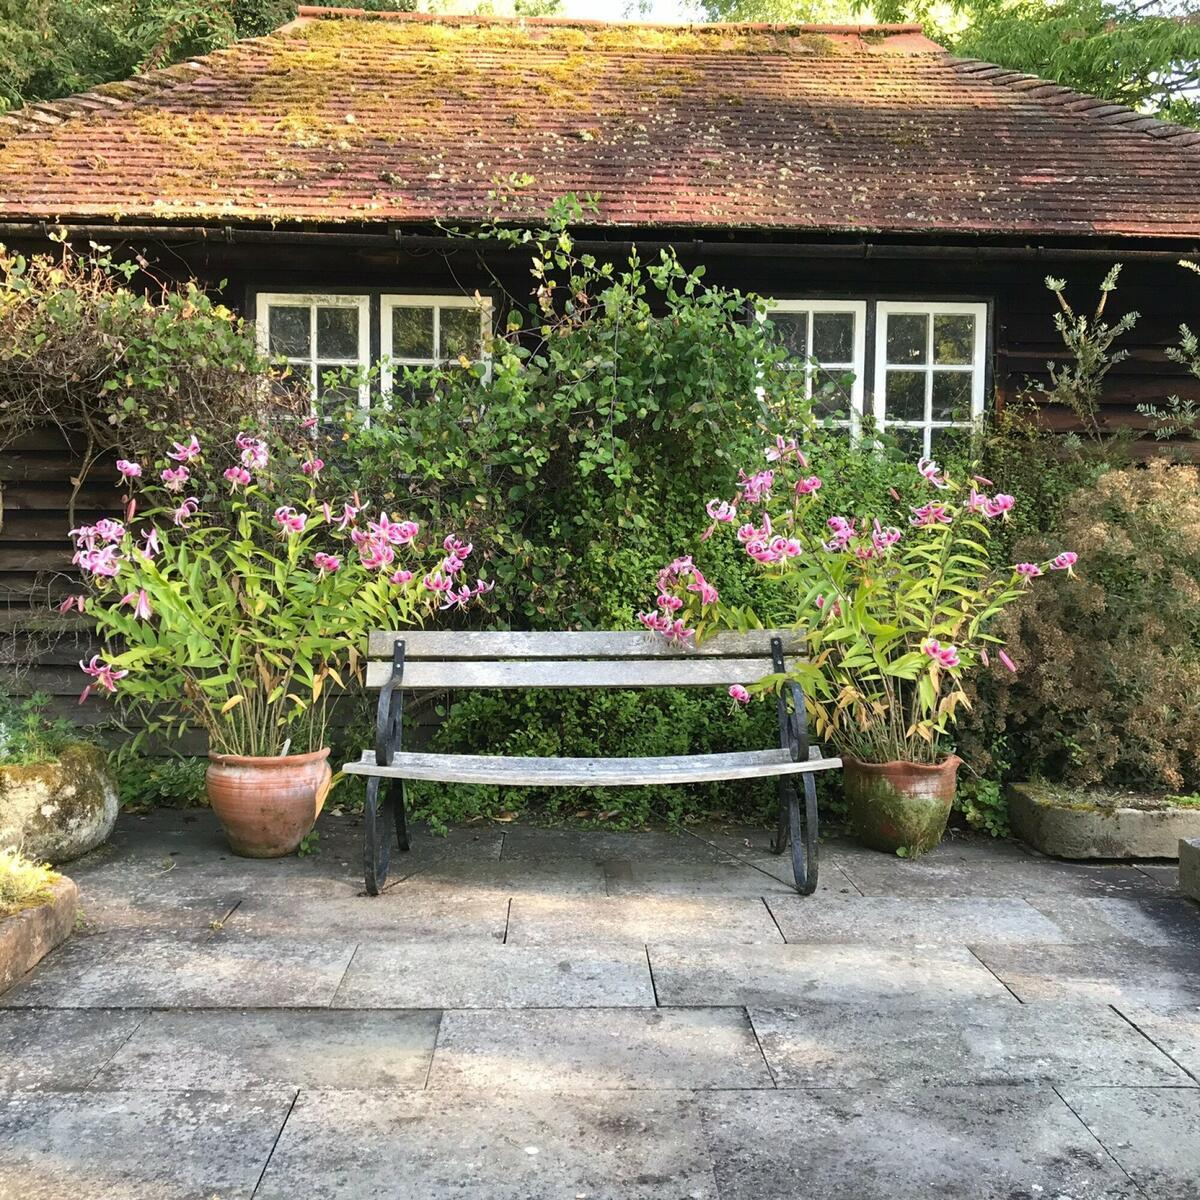 Peaceful corner by the old potting shed